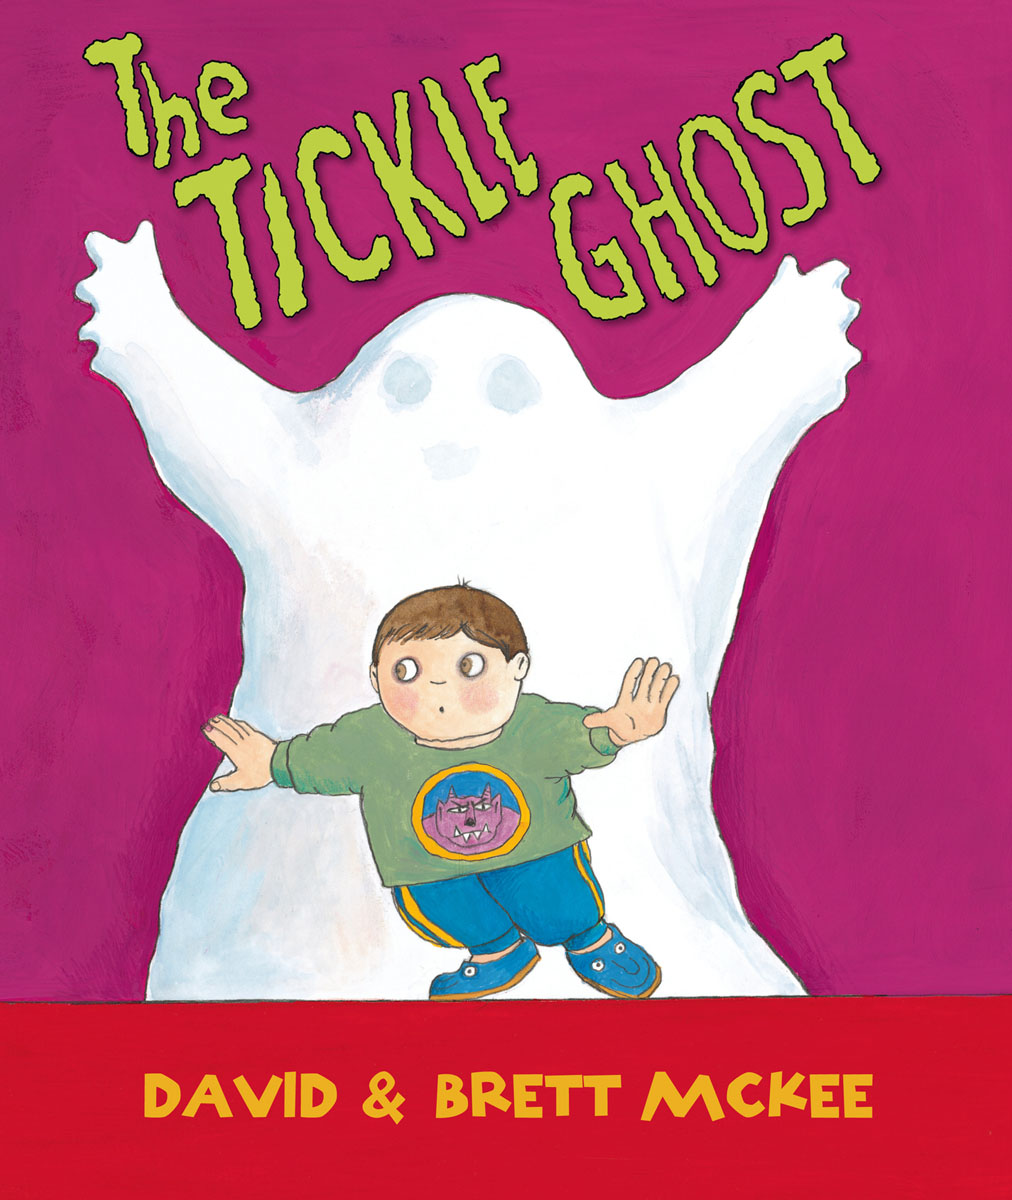 The Tickle Ghost tickle monster